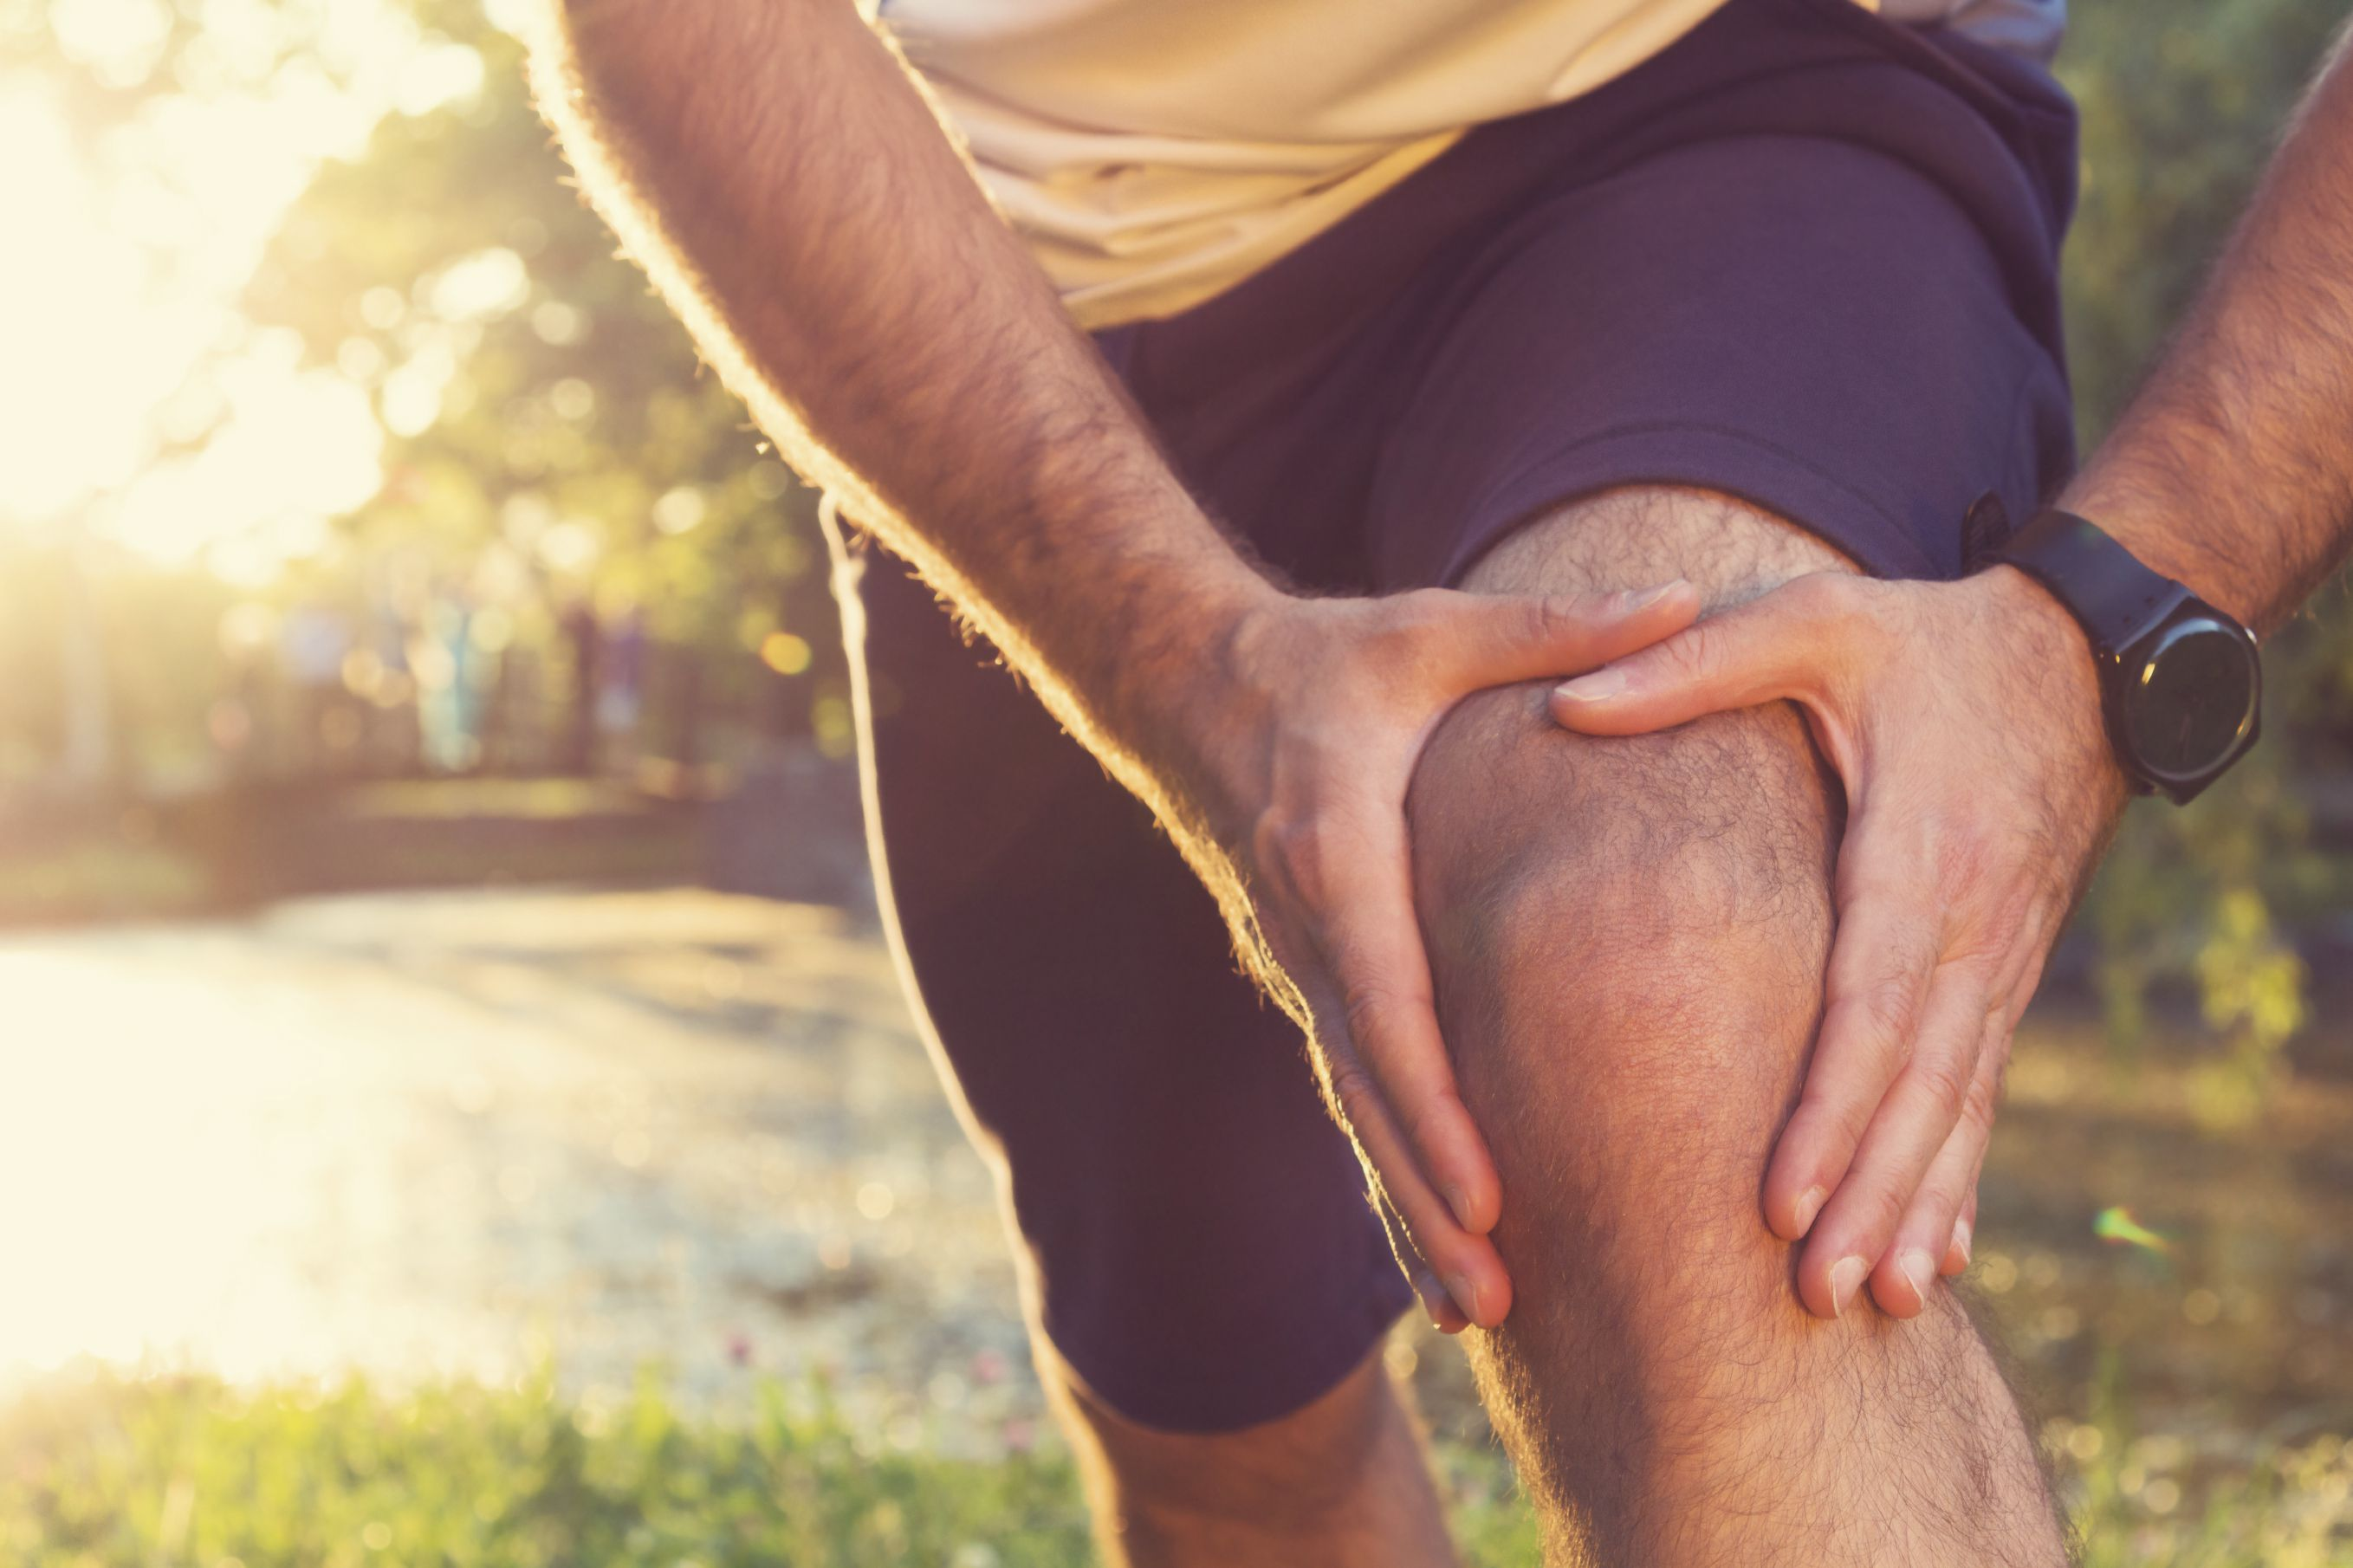 metastatic cancer knee pain hpv that causes cancer and warts